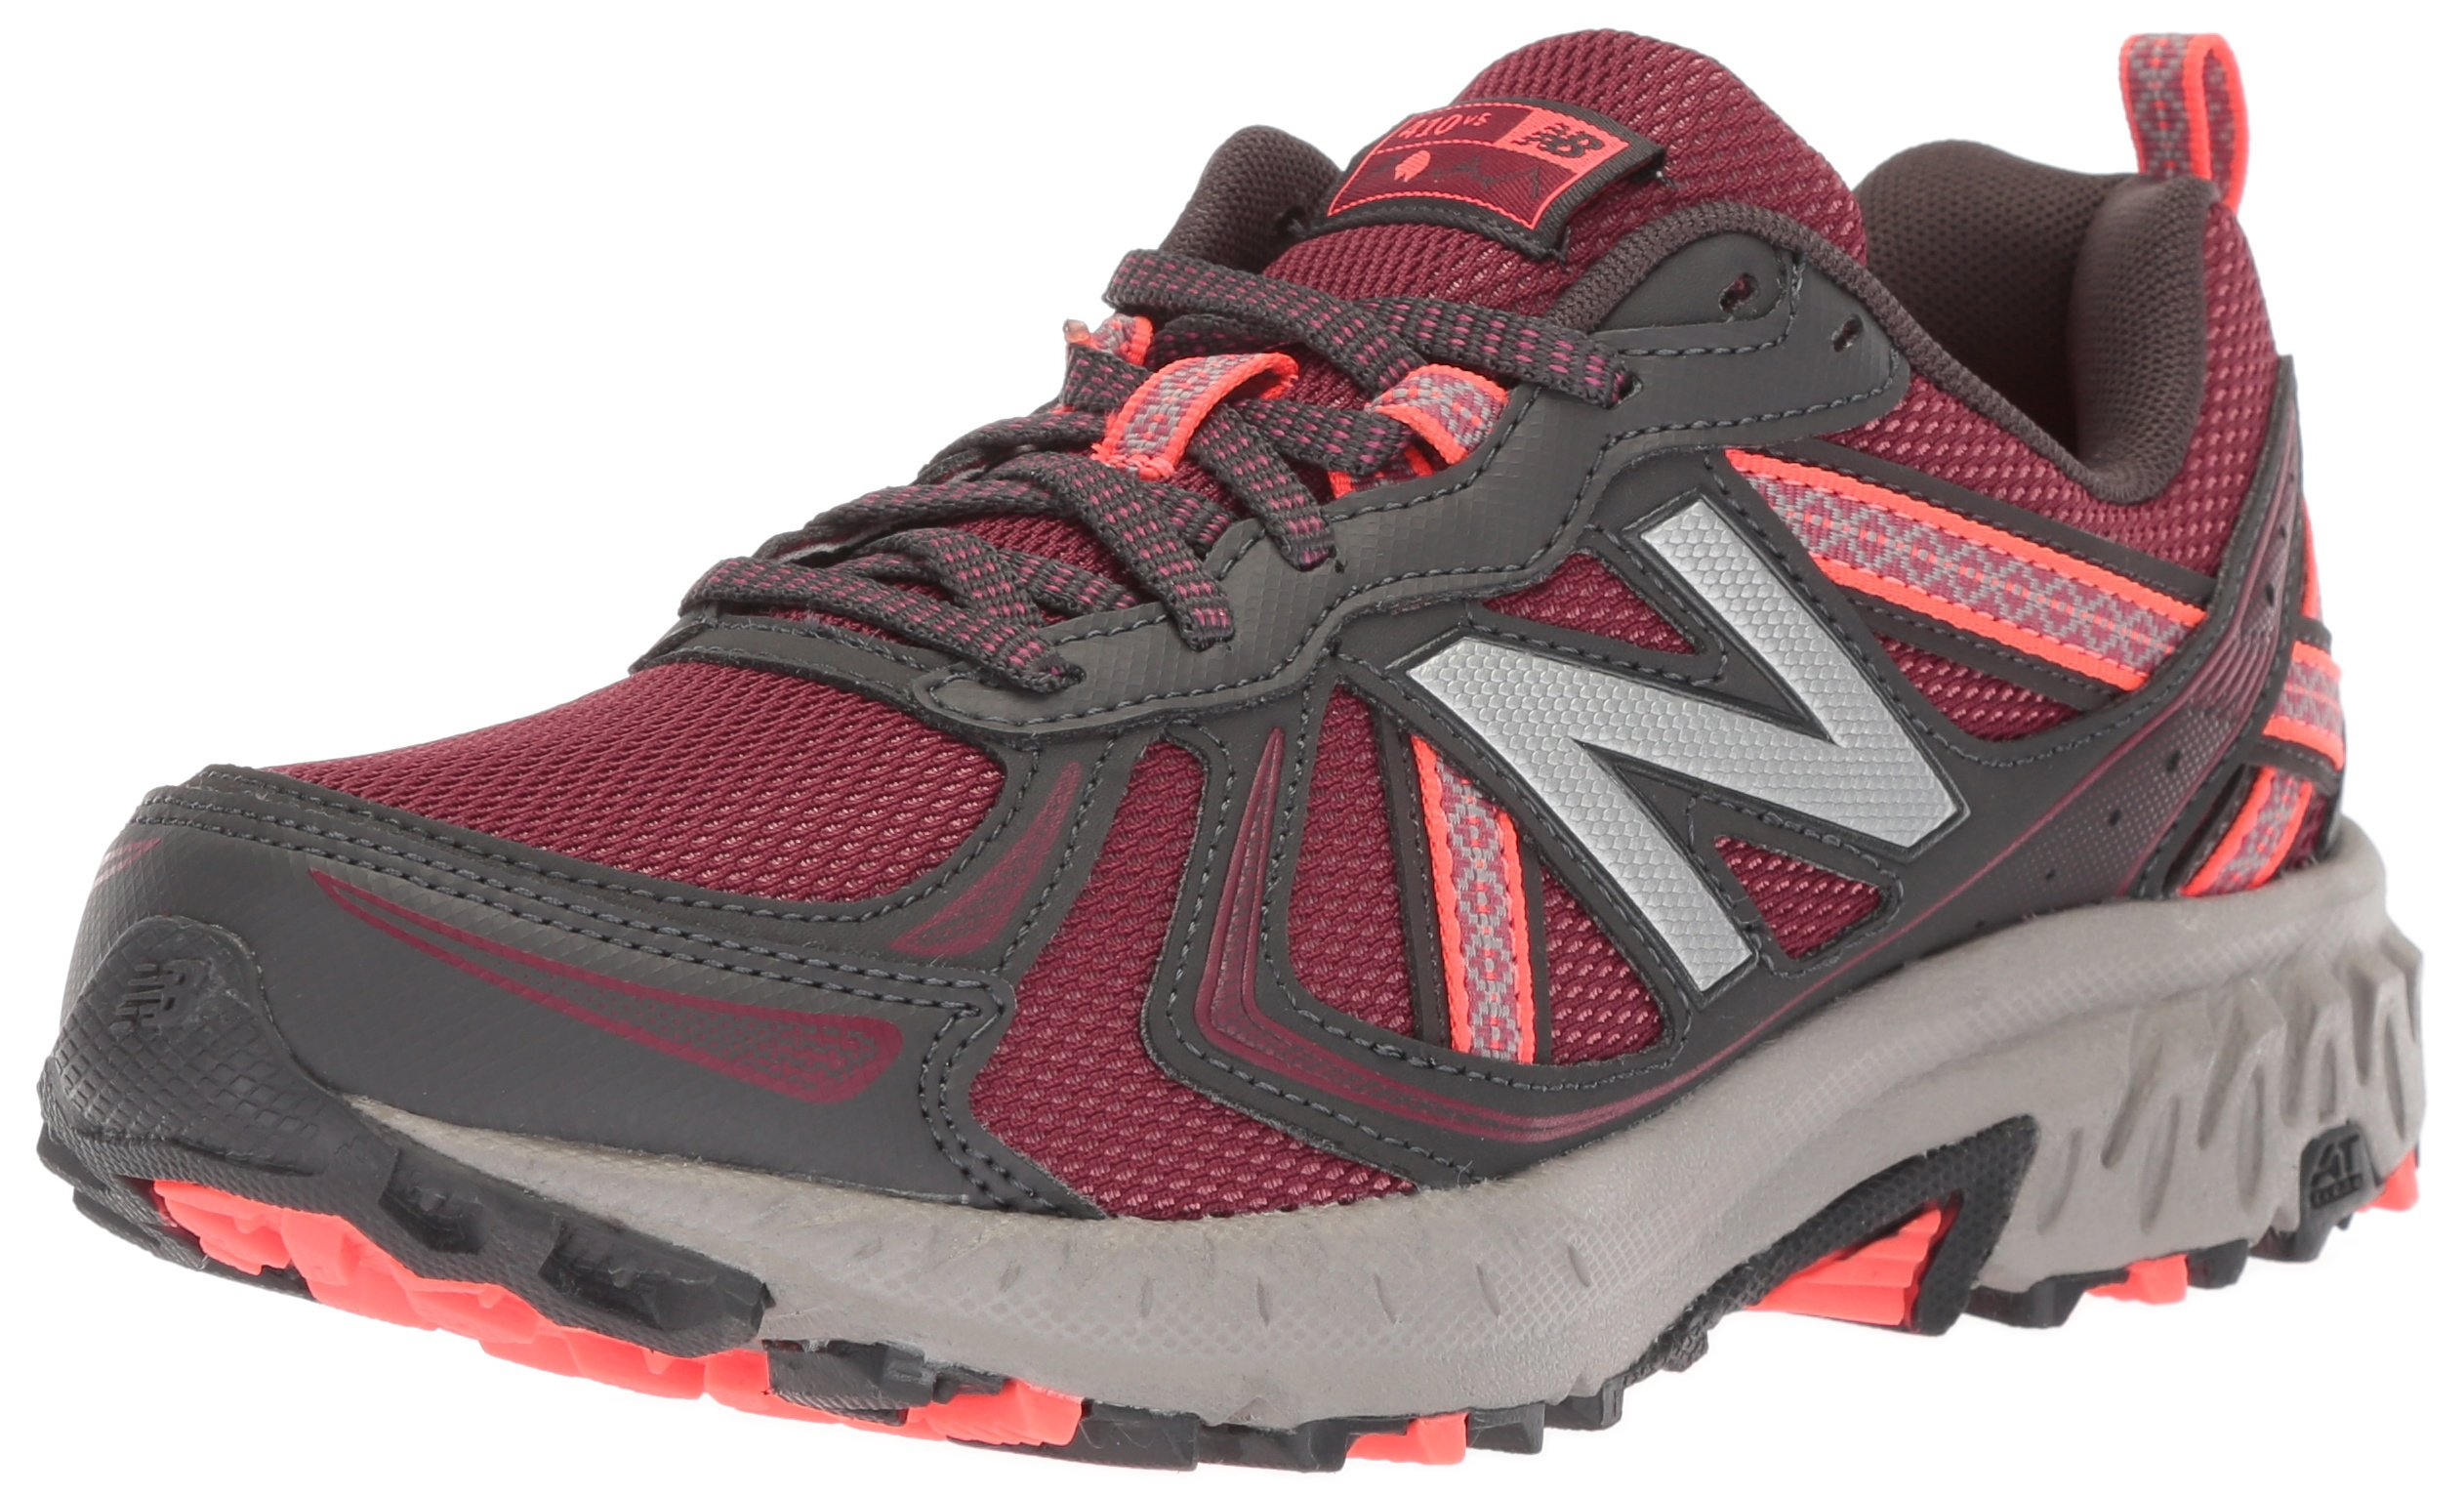 New Balance Women's WT410v5 Cushioning Trail Running Shoe, Vortex, 5 D US by New Balance